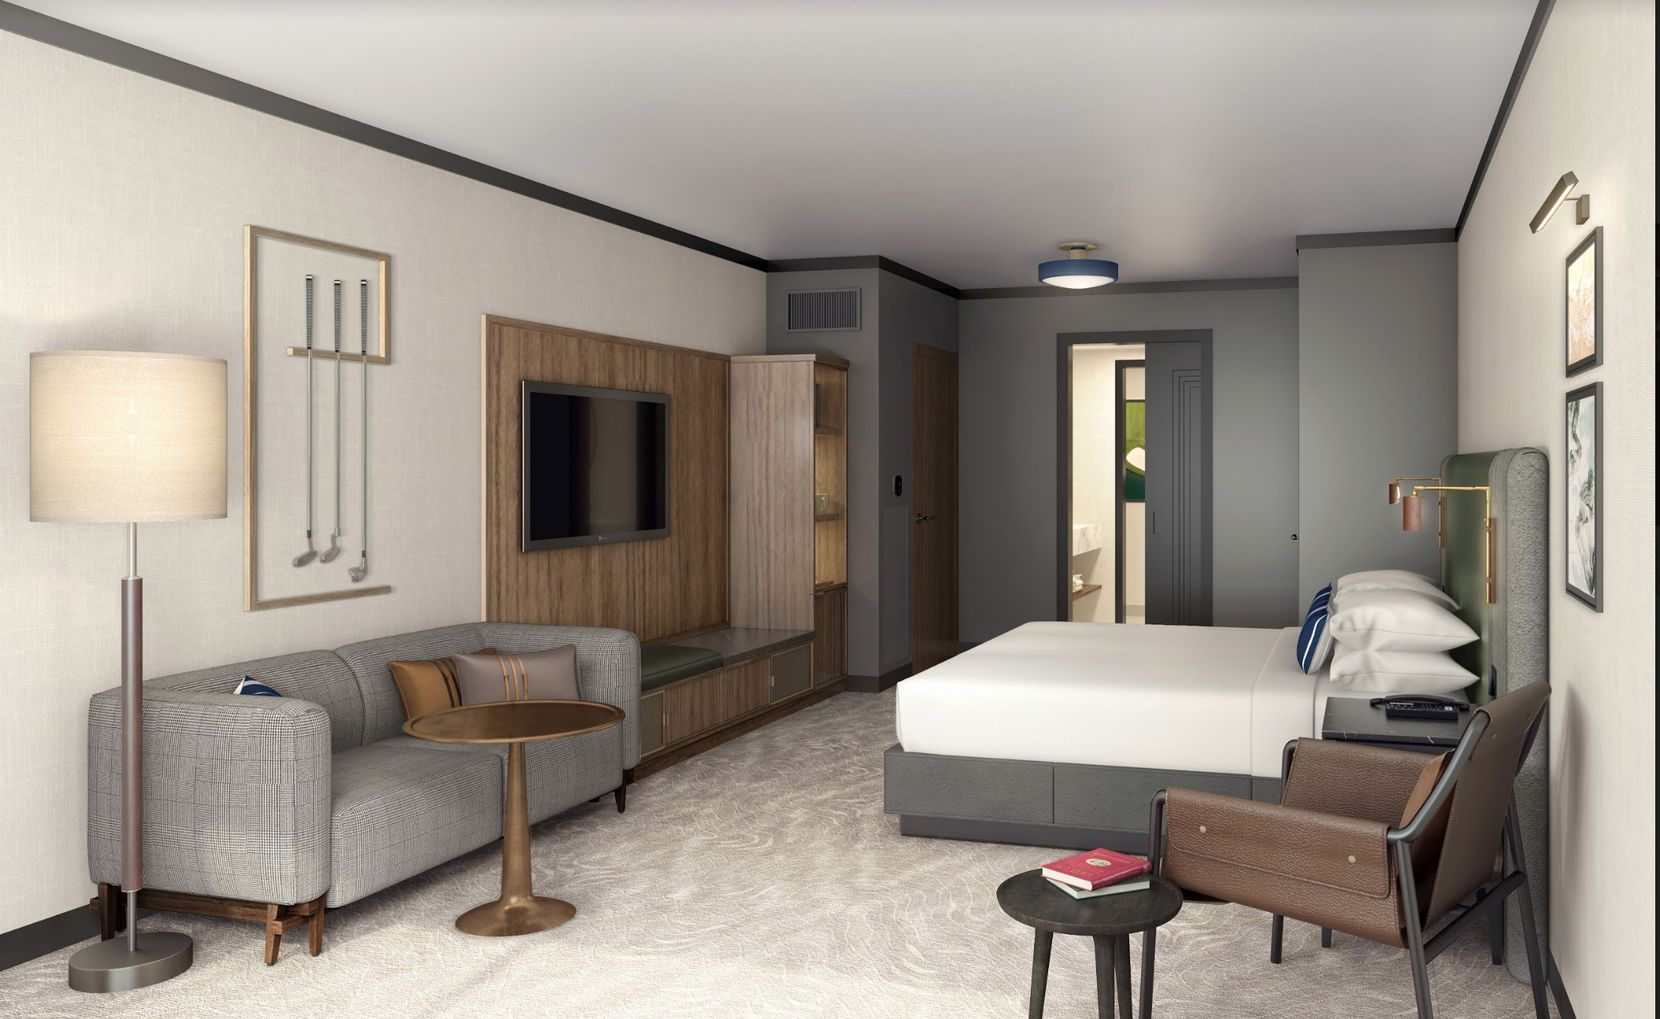 Jeffrey Beers International is the interior design firm for the new Frisco hotel and resort.